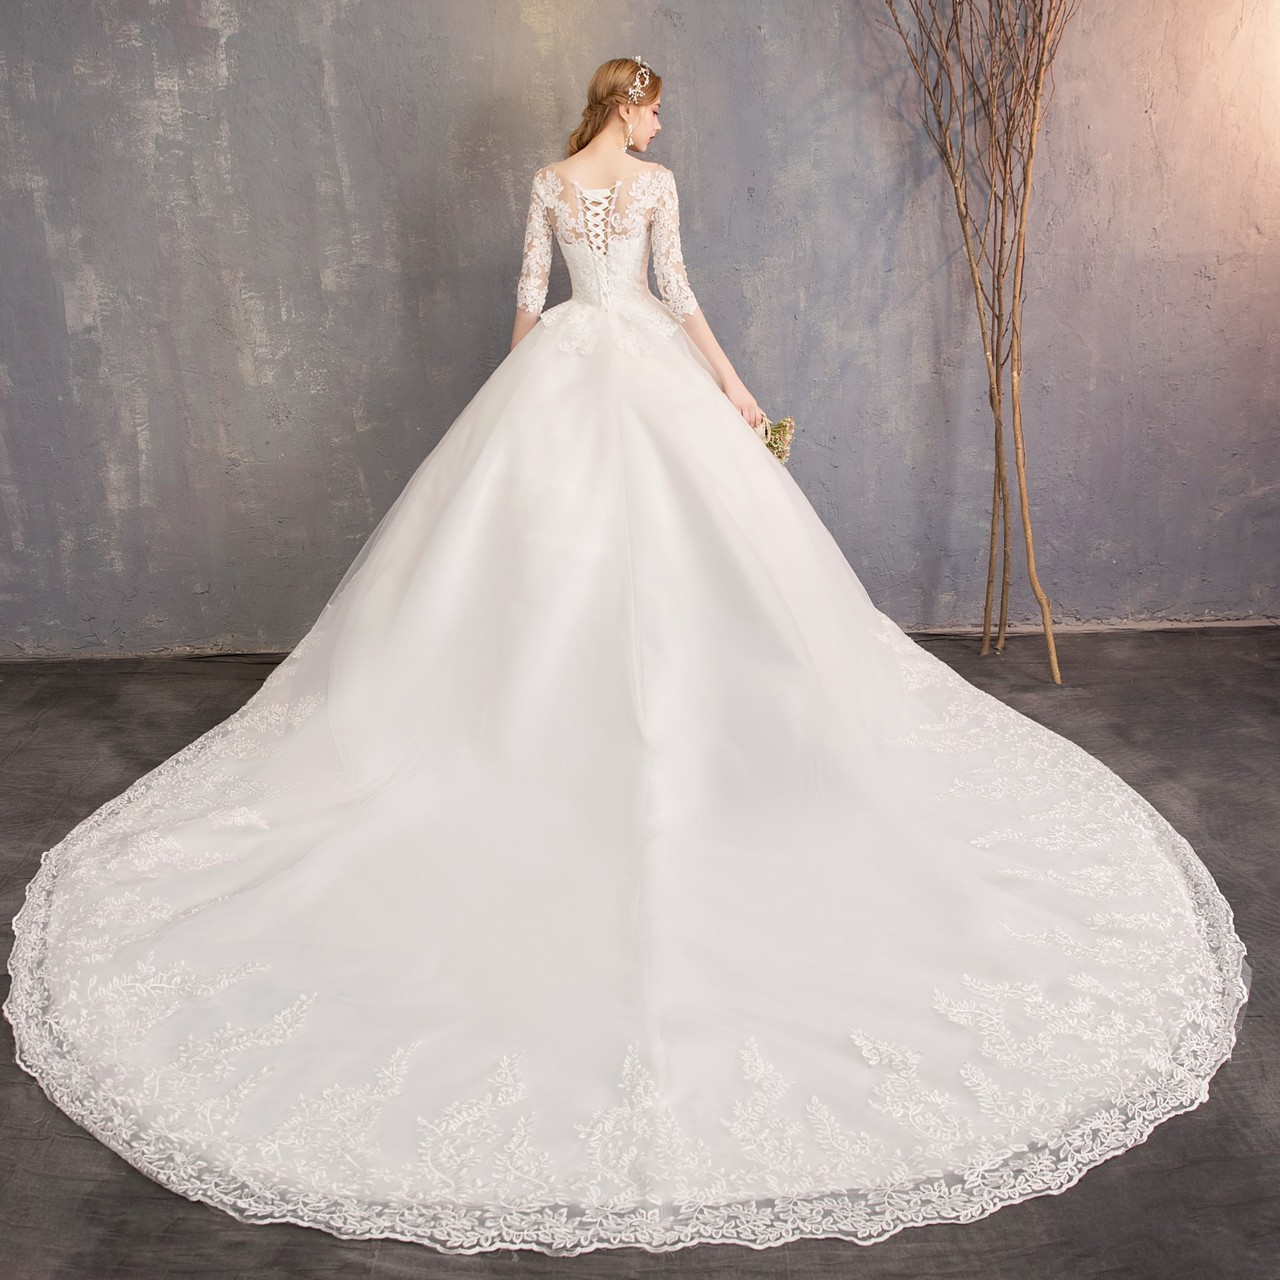 Long Sleeved Wedding Dresses.Wedding Dress New Long Sleeved Bride Princess Dreamlike Tail Shadow Builder Wedding Dress White S